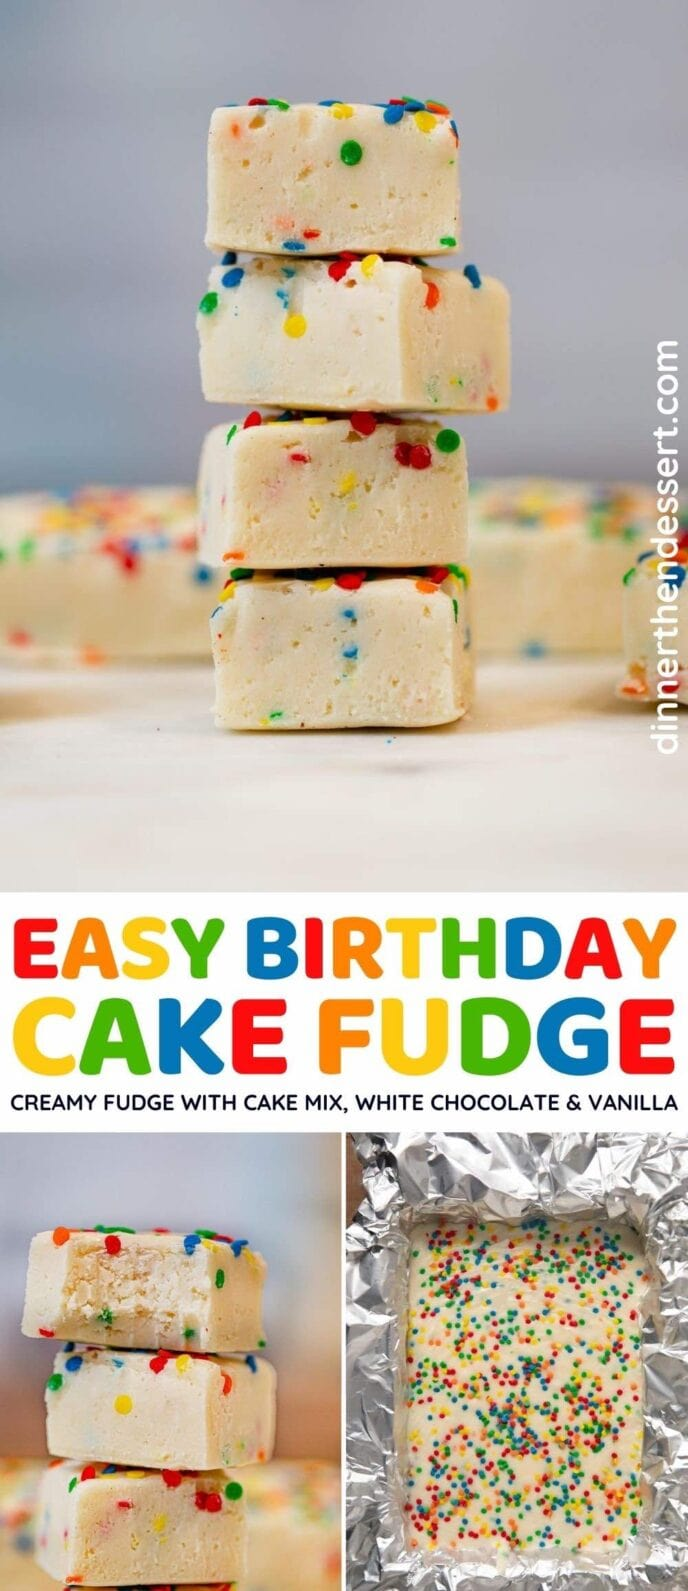 Birthday Cake Fudge collage